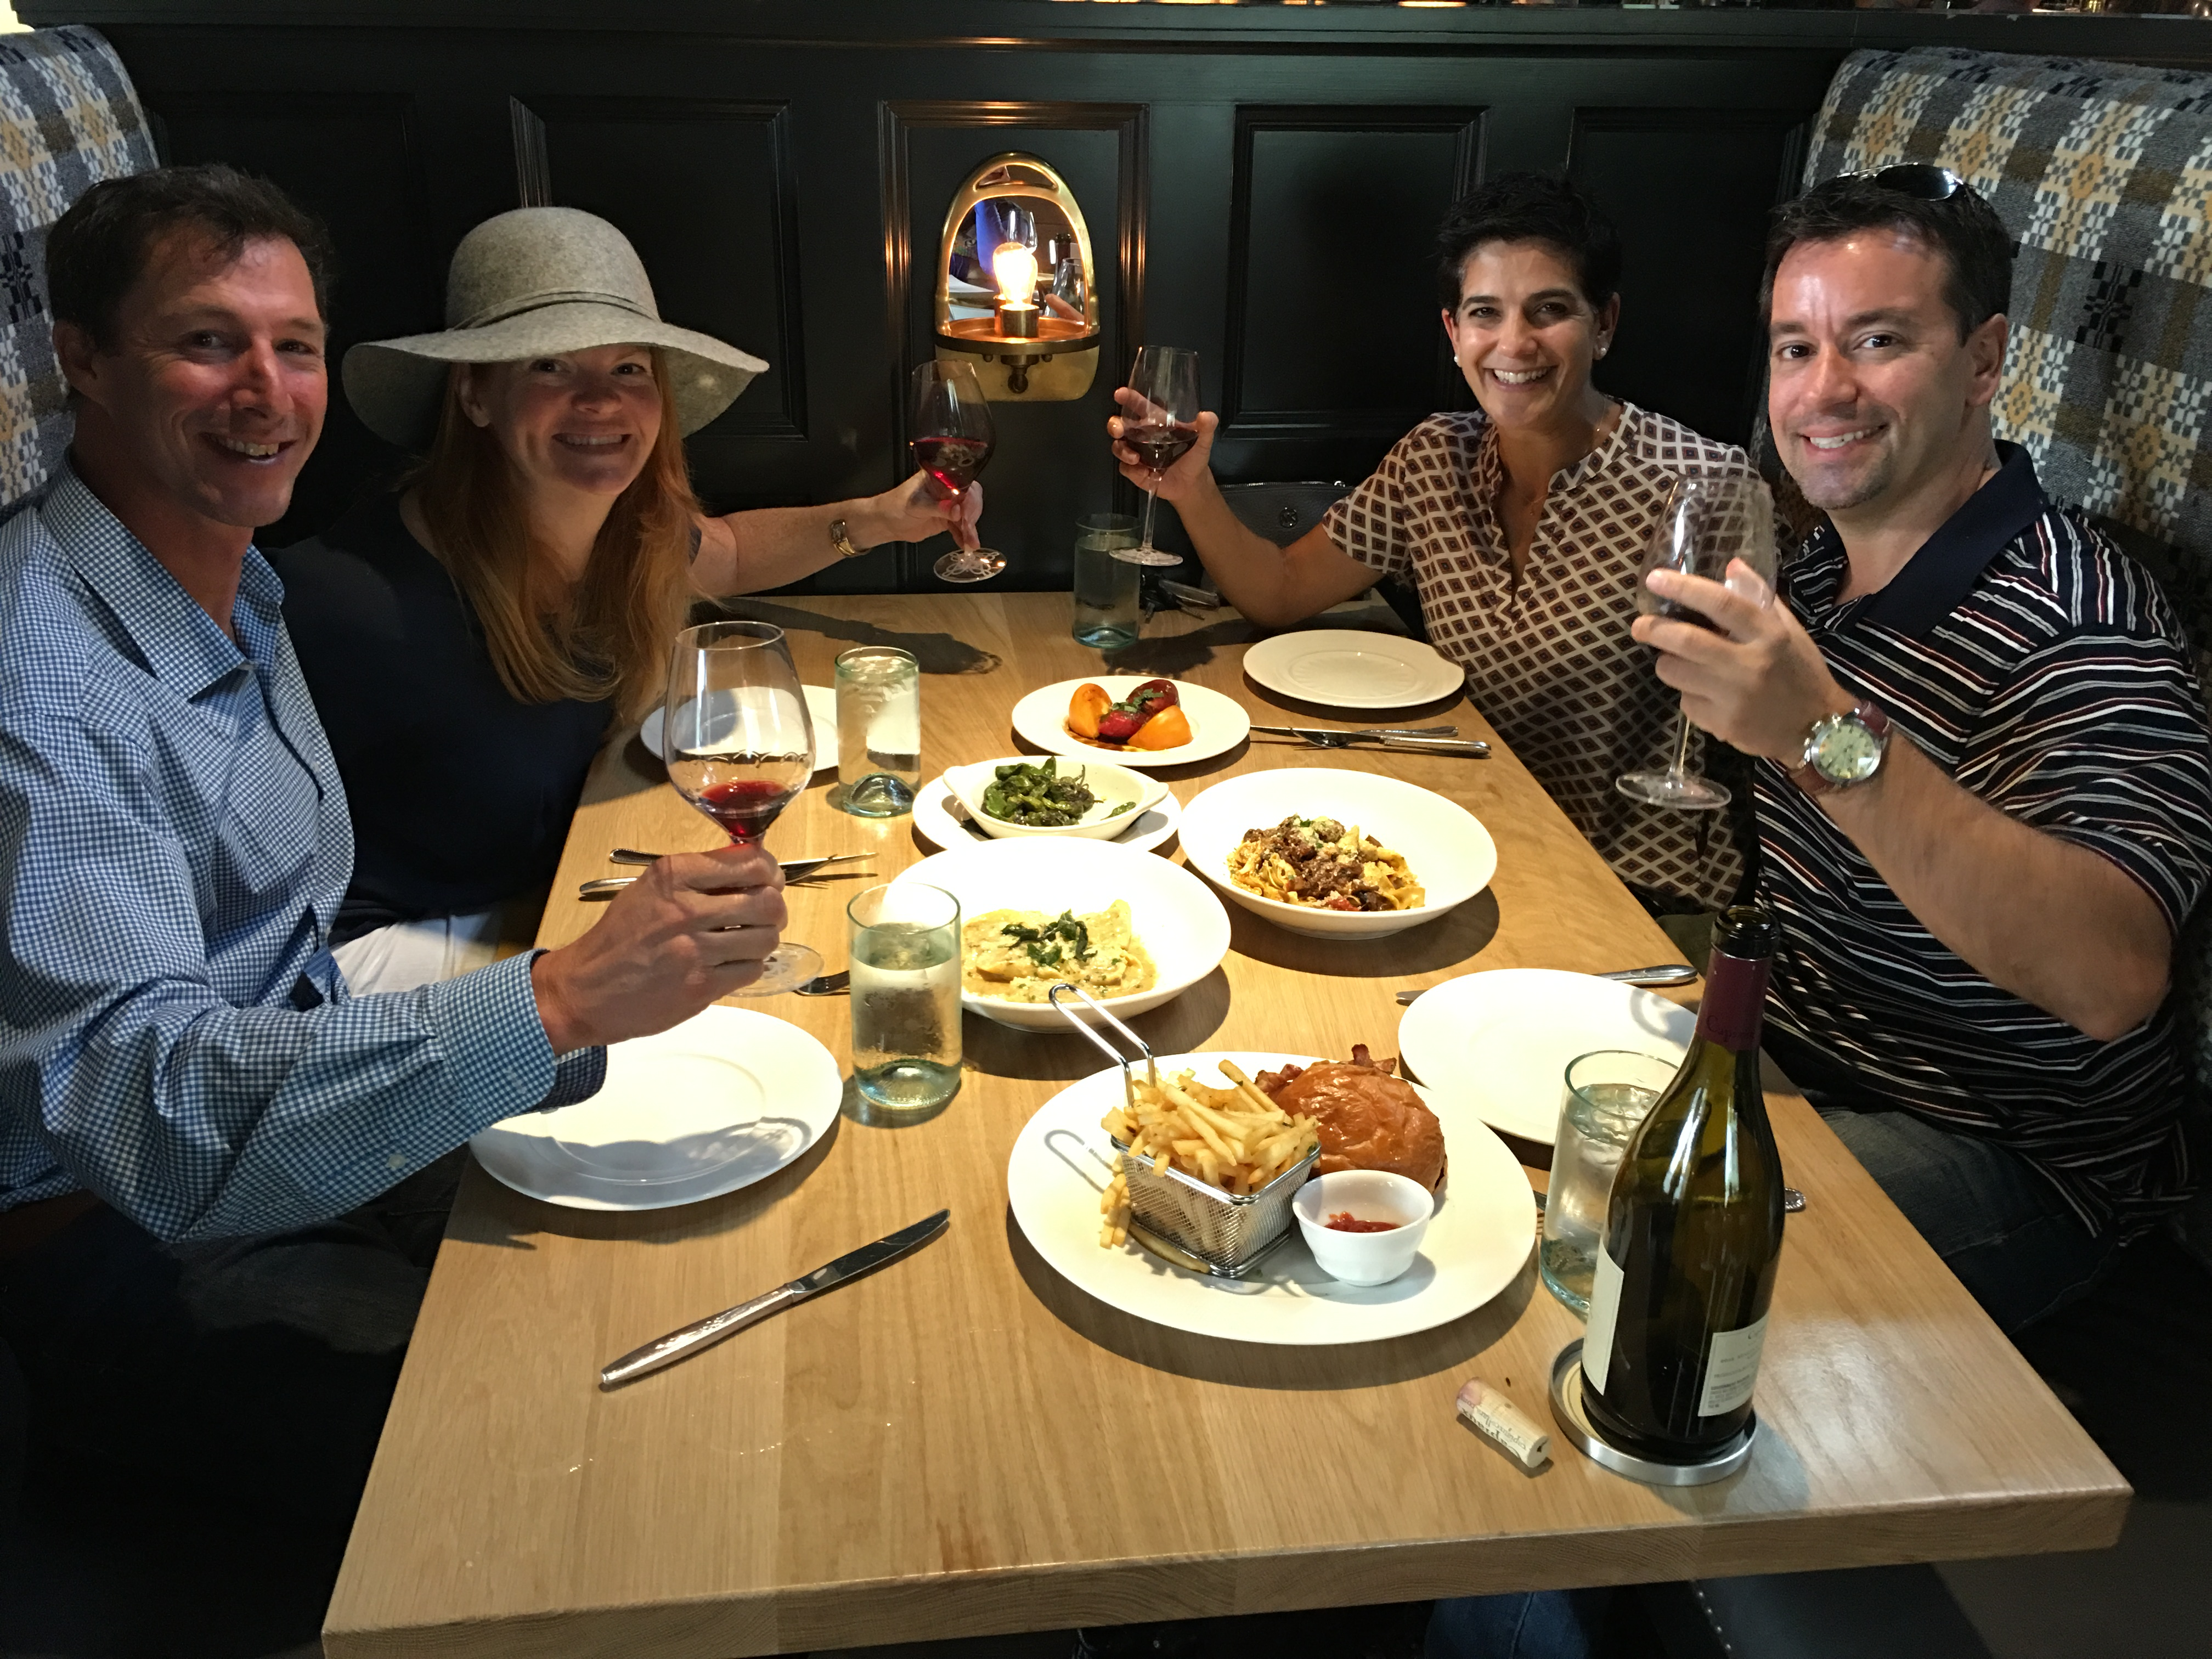 Cheers to great food and friends!